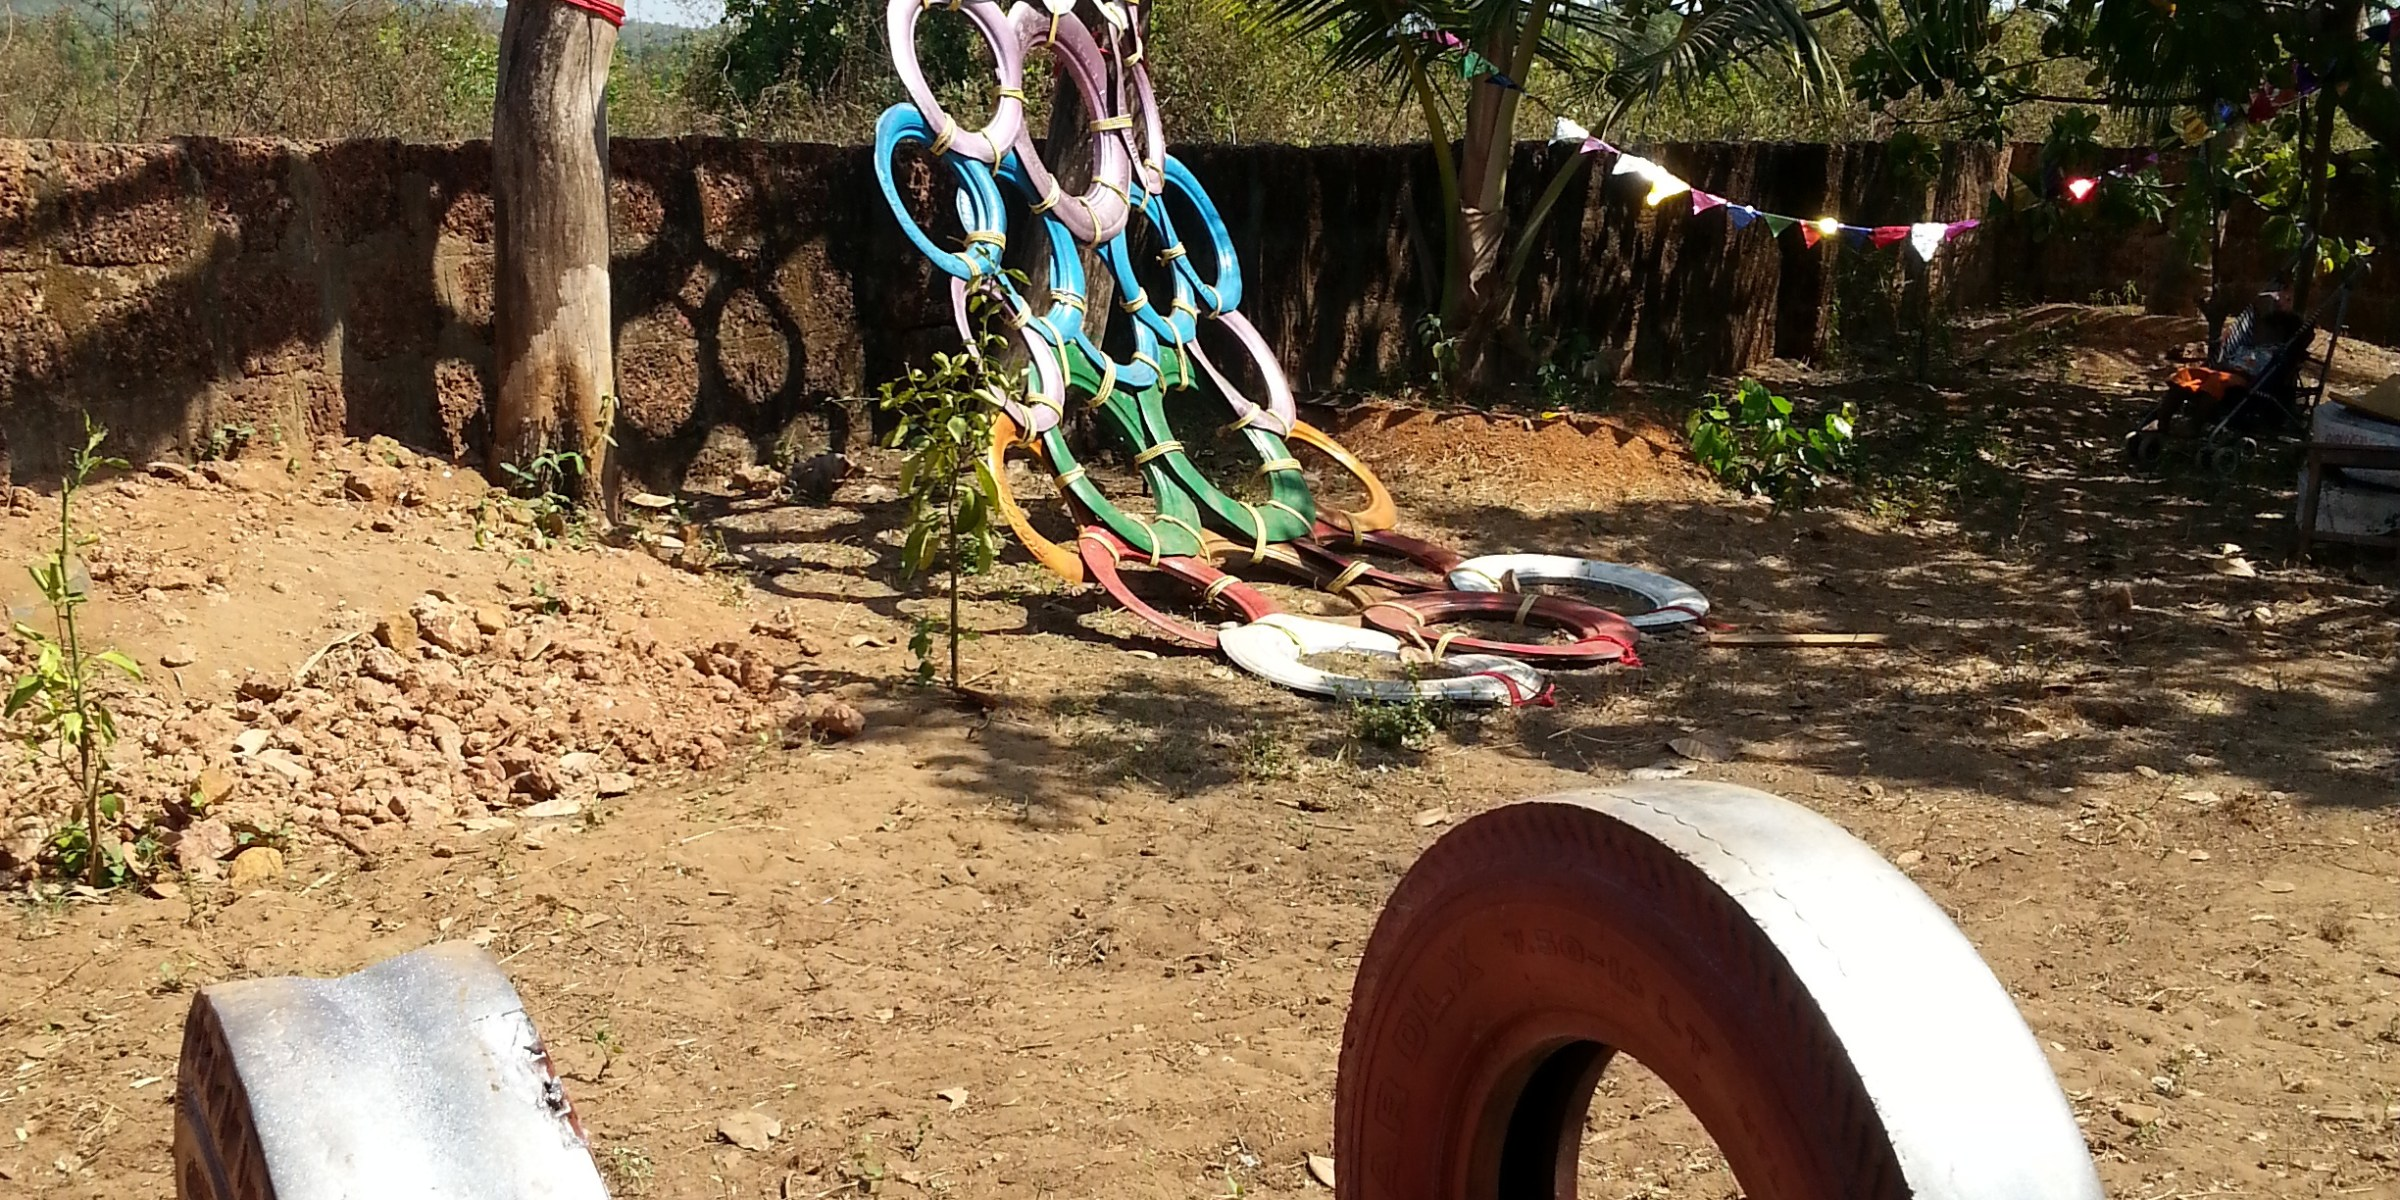 Diy tire climbing wall recycled materials onenomadwoman for Tire play structure